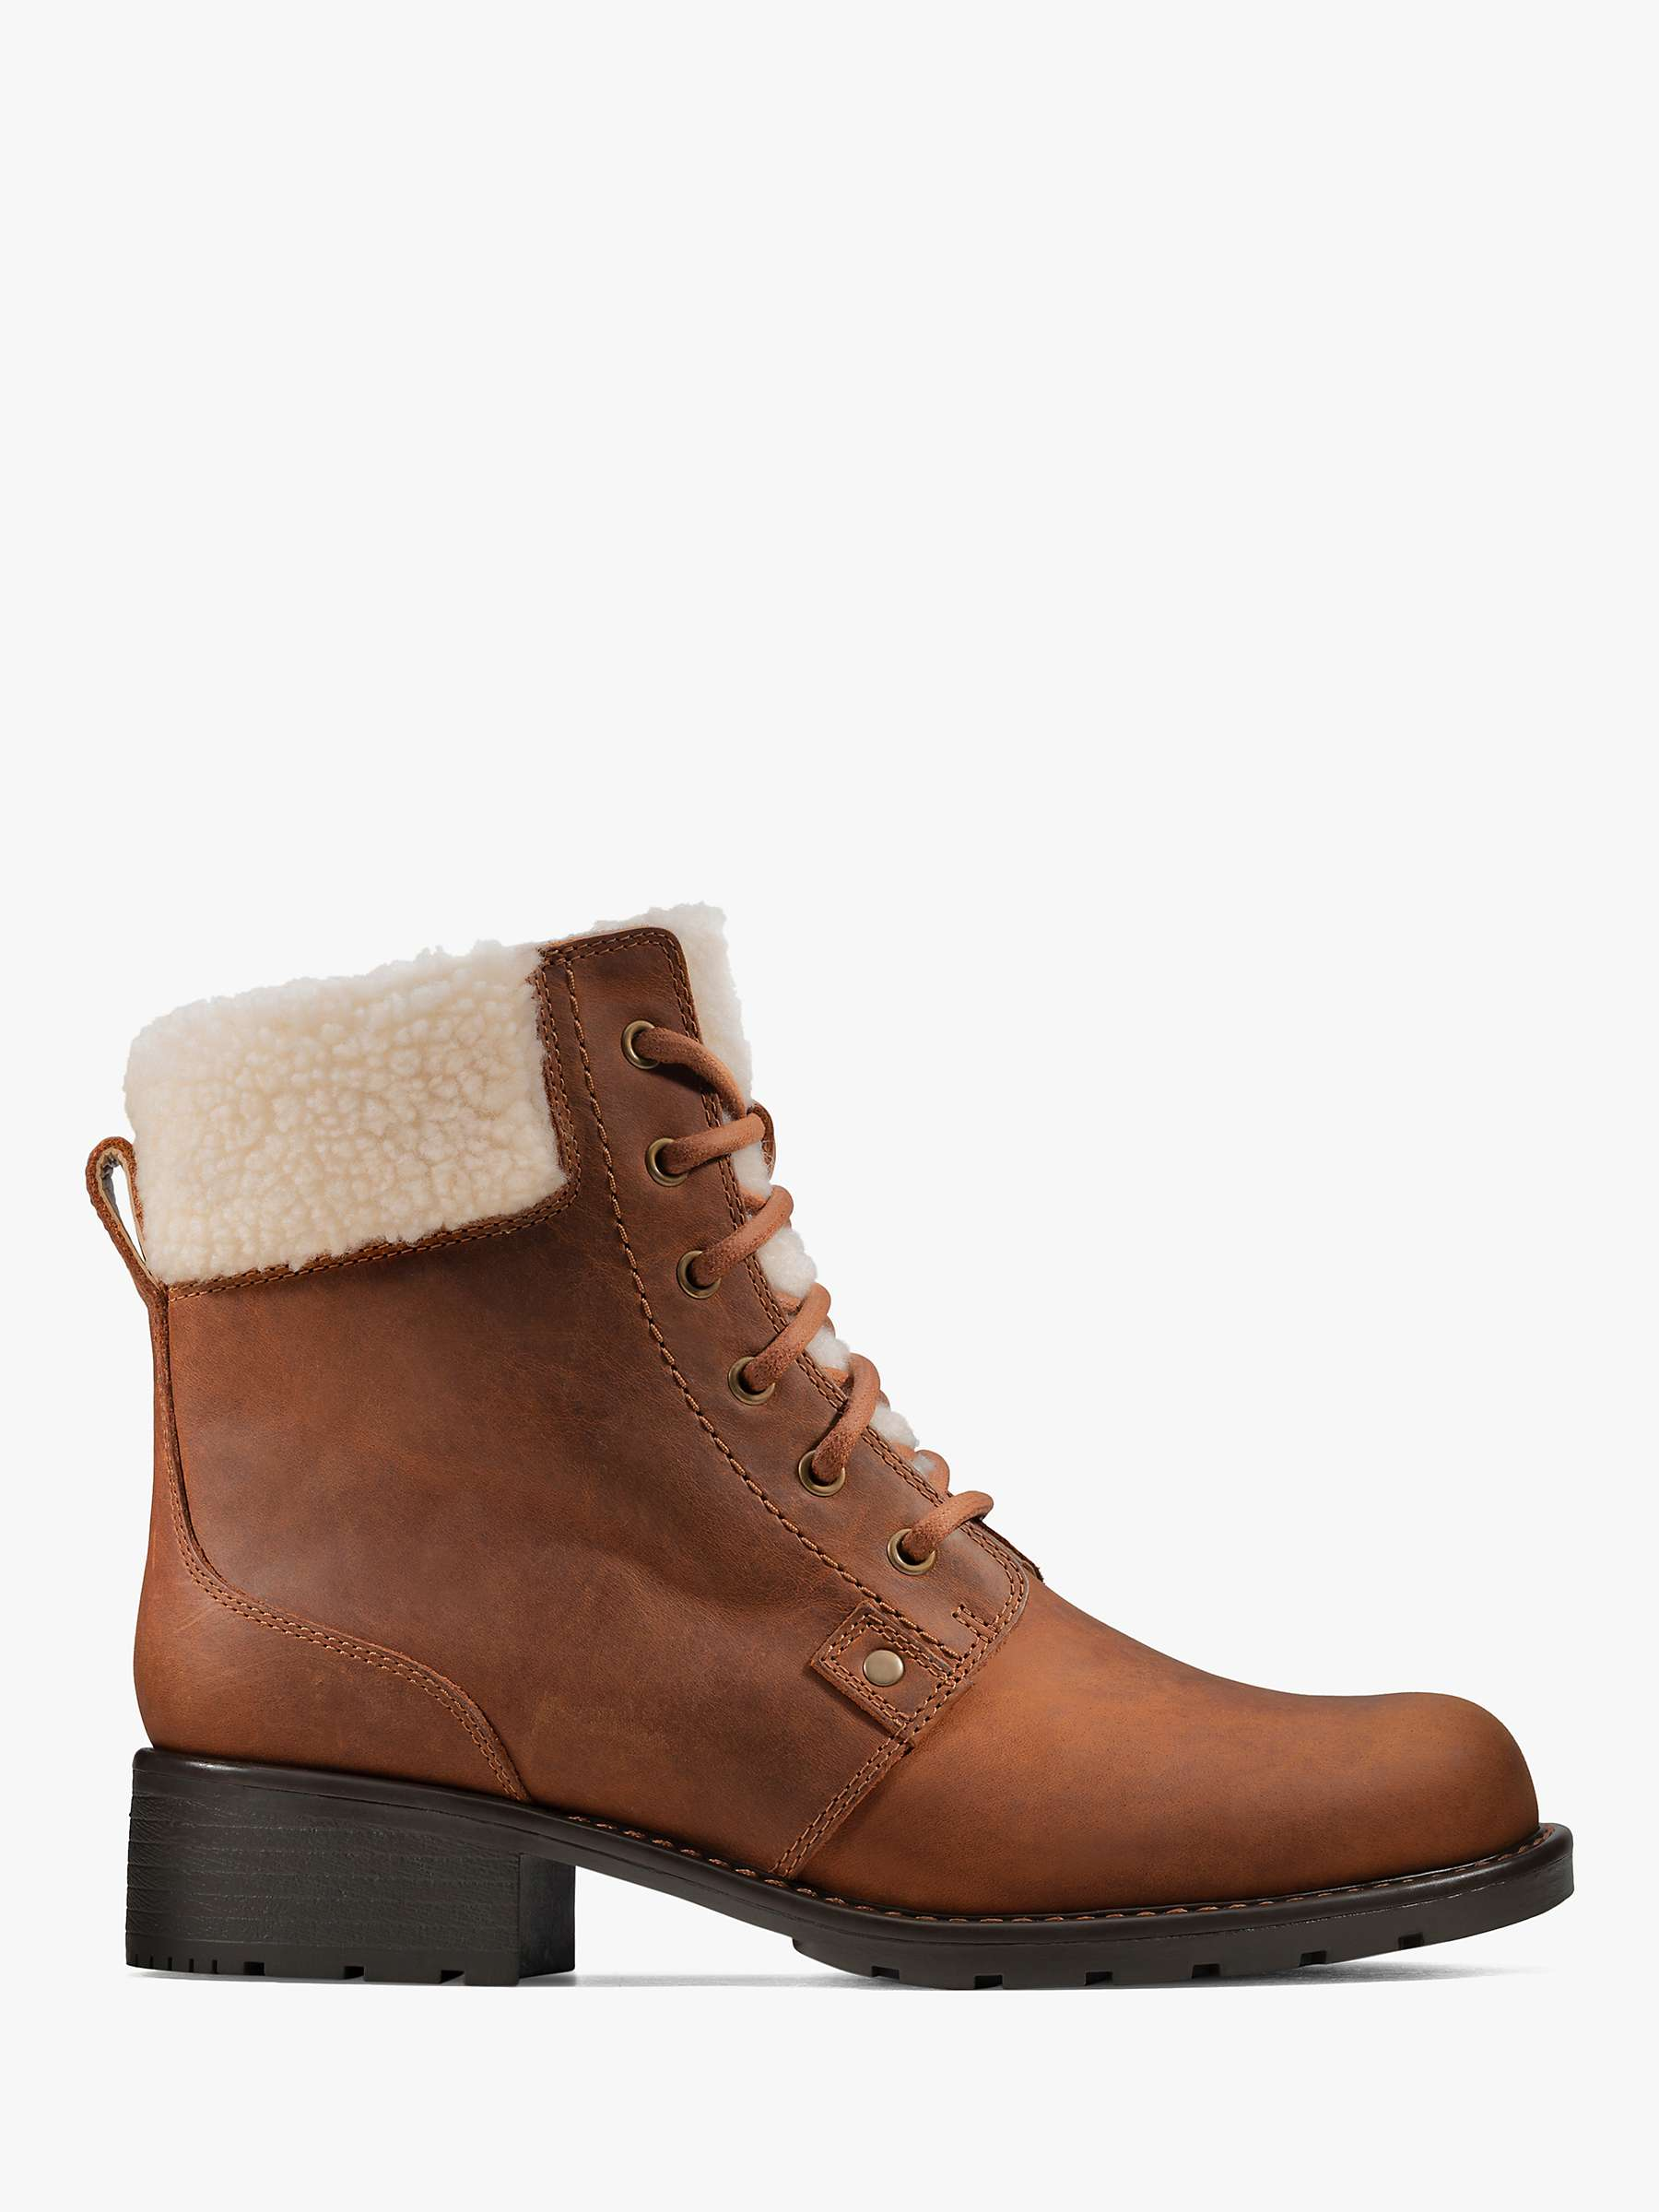 Clarks Orinoco Dusk Leather Lace Up Faux Fur Ankle Boots, Tan by Clarks